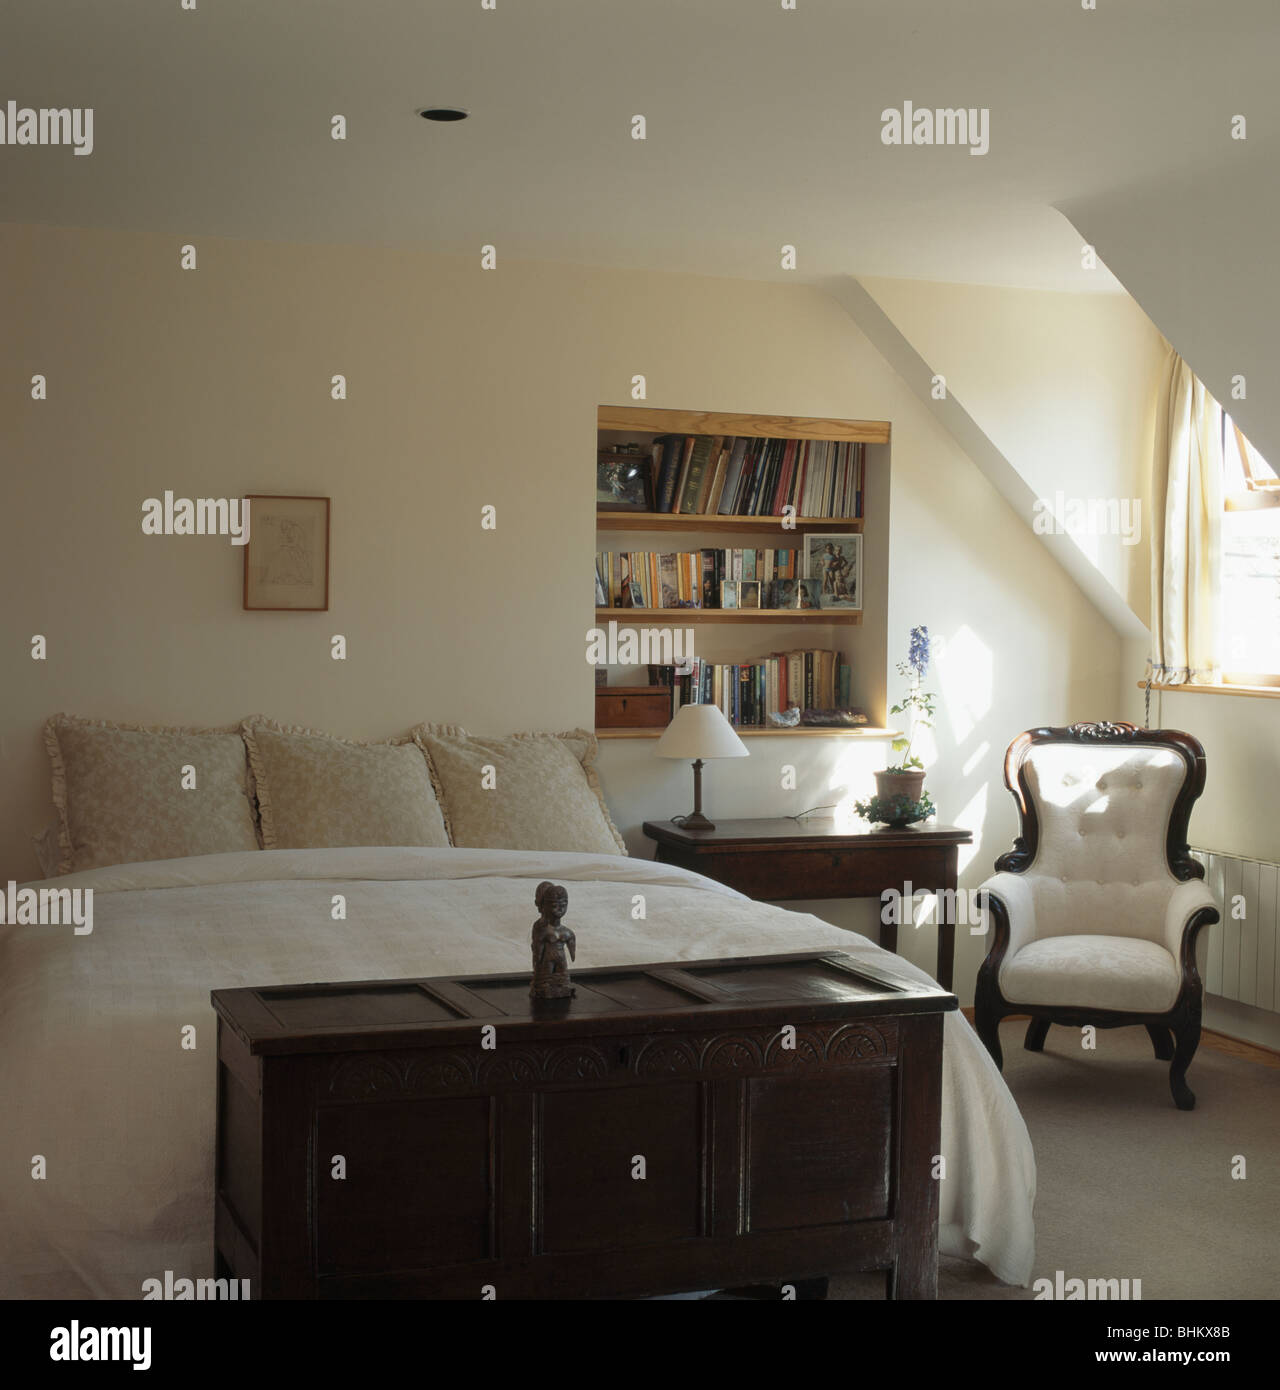 Große Zimmerpflanze Schlafzimmer Attics Bedrooms Stockfotos And Attics Bedrooms Bilder Alamy